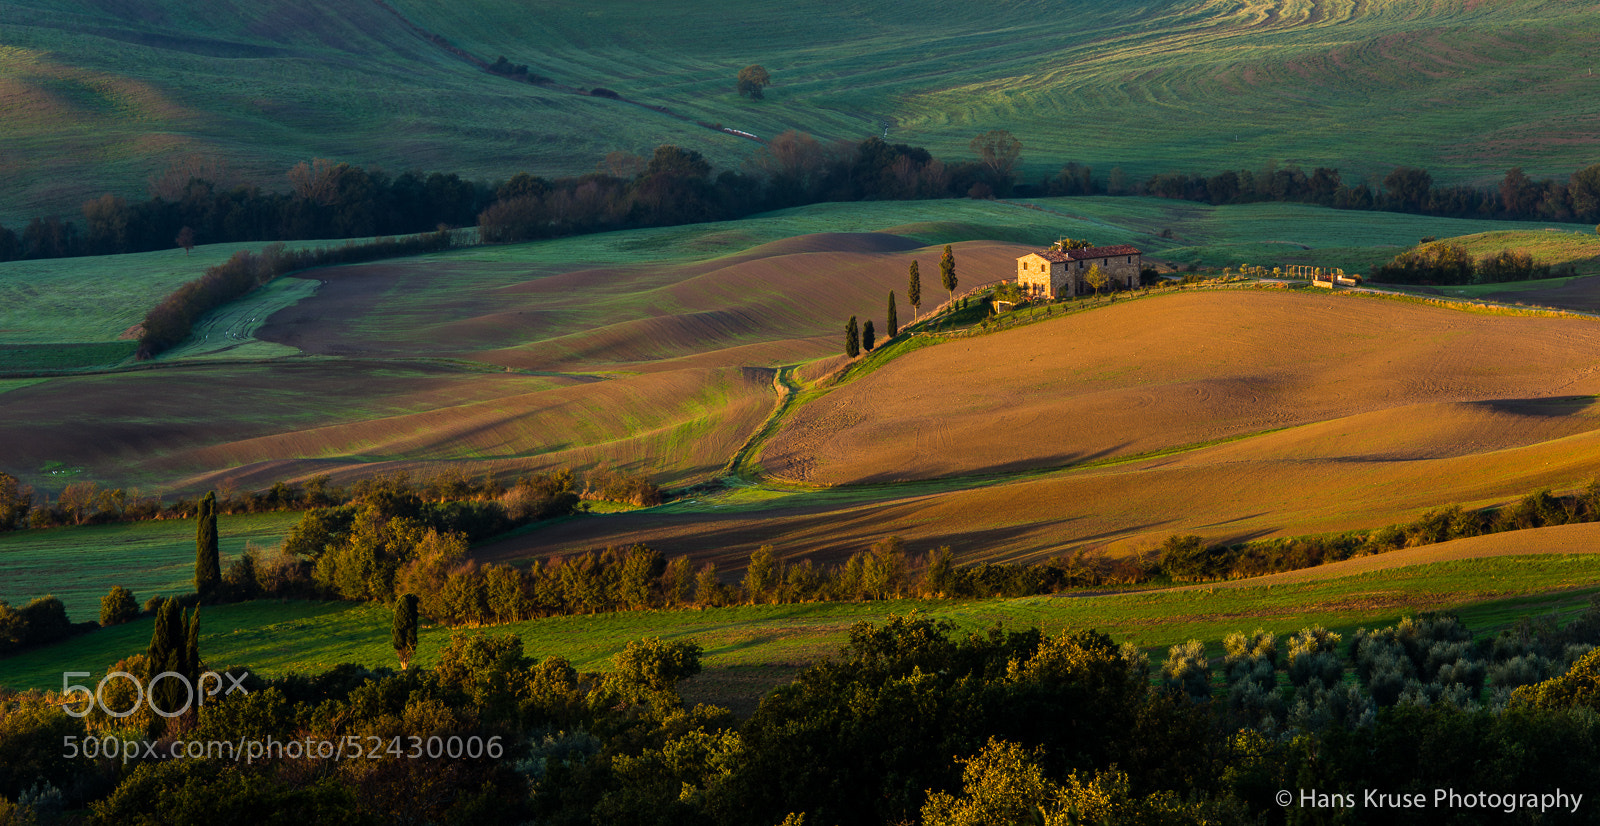 Photograph Tuscan landscape with morning sun by Hans Kruse on 500px